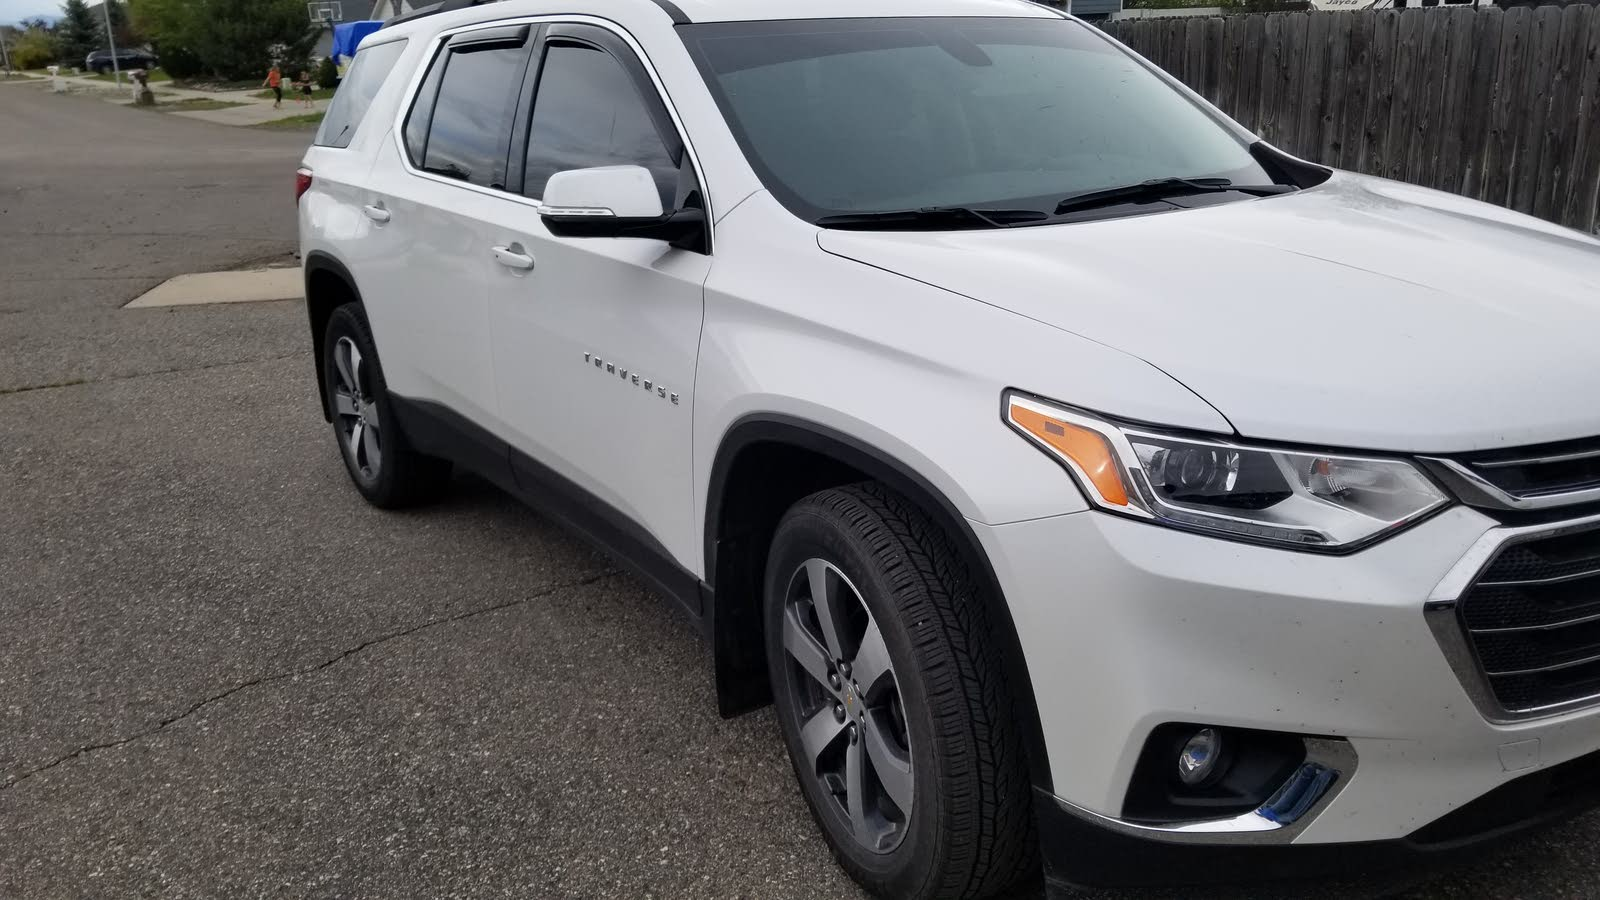 2019 chevrolet traverse - overview